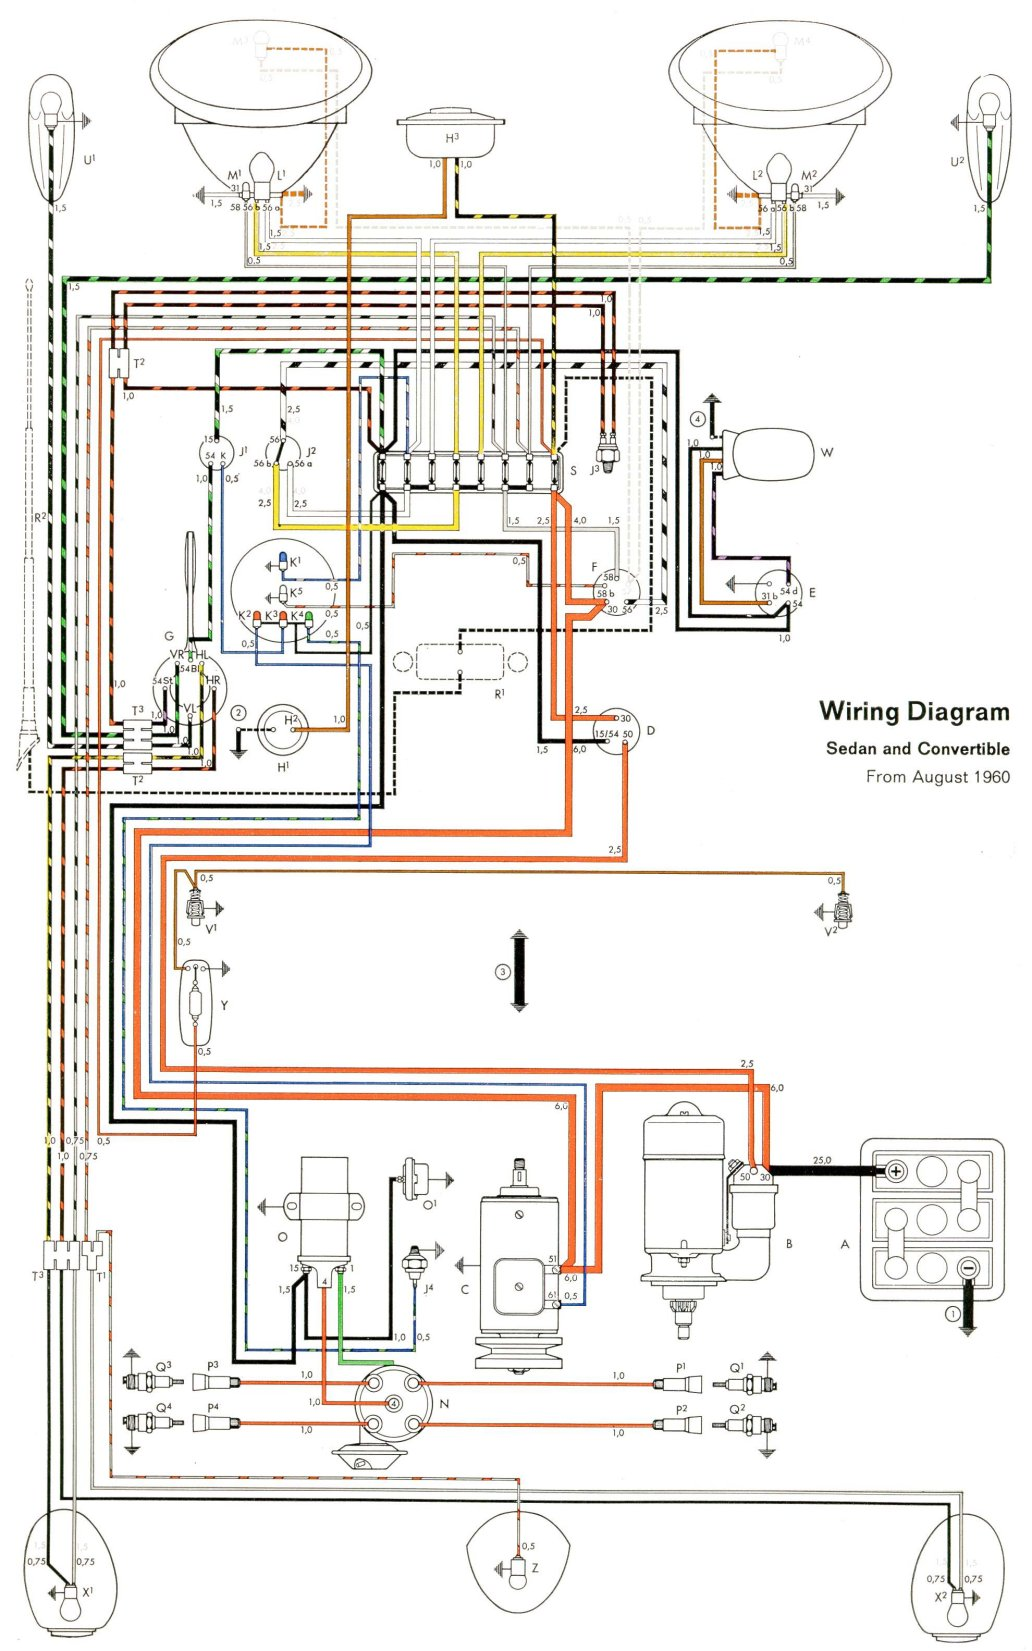 bug_61 thesamba com type 1 wiring diagrams 69 vw wiring diagram at bayanpartner.co